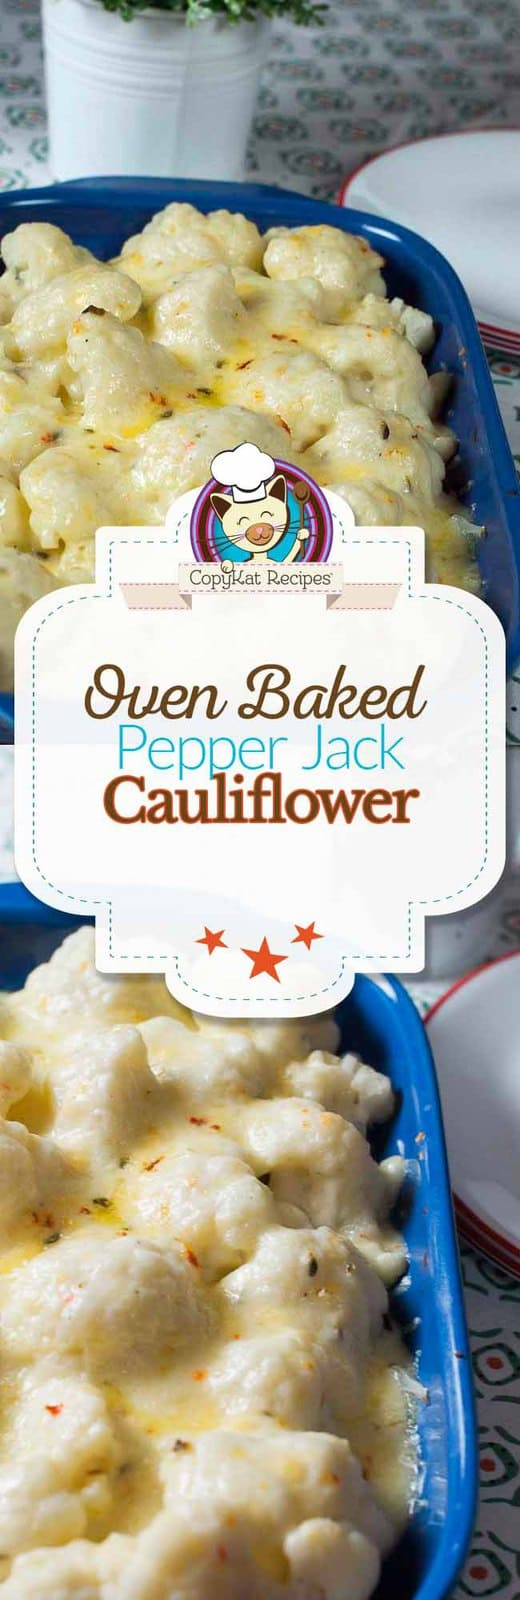 Cauliflower is baked in the oven with a Pepper Jack cheese sauce. #cauliflower #oven #baked #vegetarian #sauce